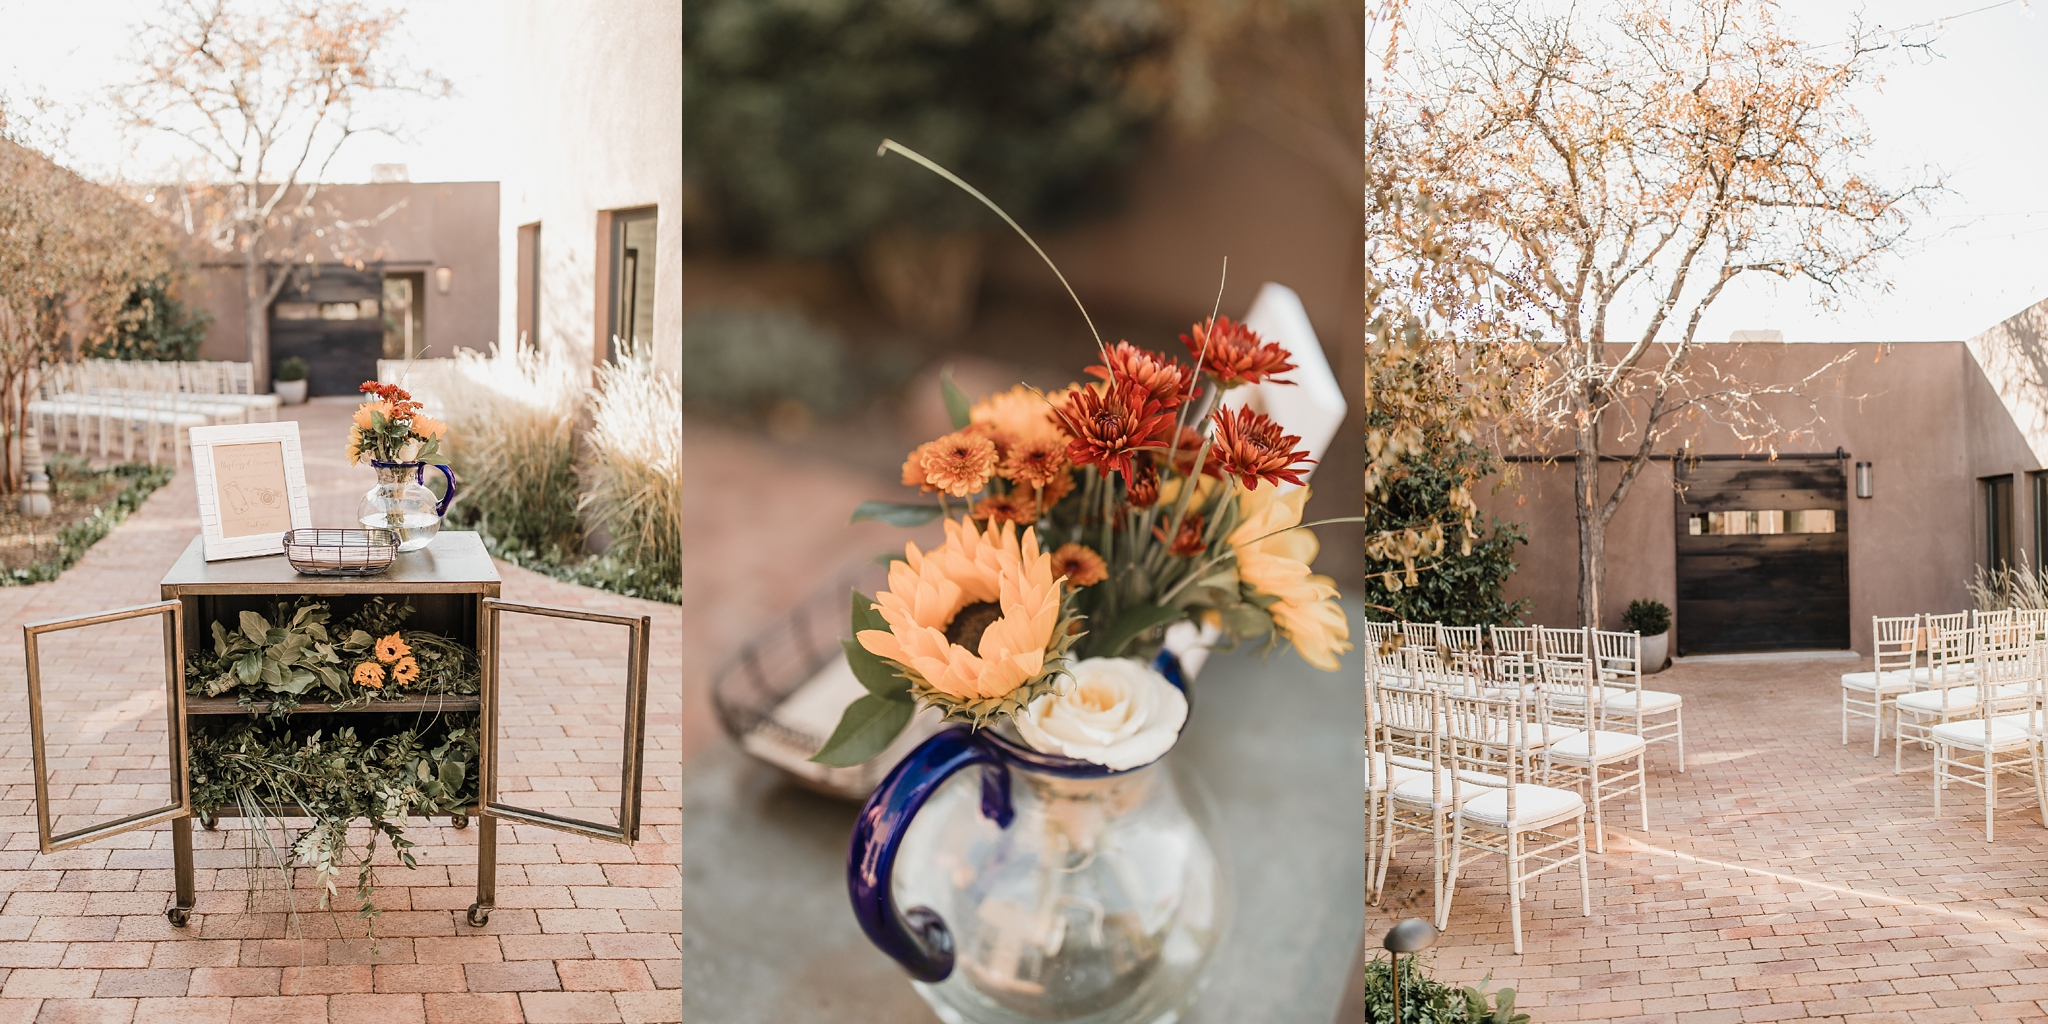 Alicia+lucia+photography+-+albuquerque+wedding+photographer+-+santa+fe+wedding+photography+-+new+mexico+wedding+photographer+-+albuquerque+wedding+-+sarabande+bed+breakfast+-+bed+and+breakfast+wedding_0042.jpg